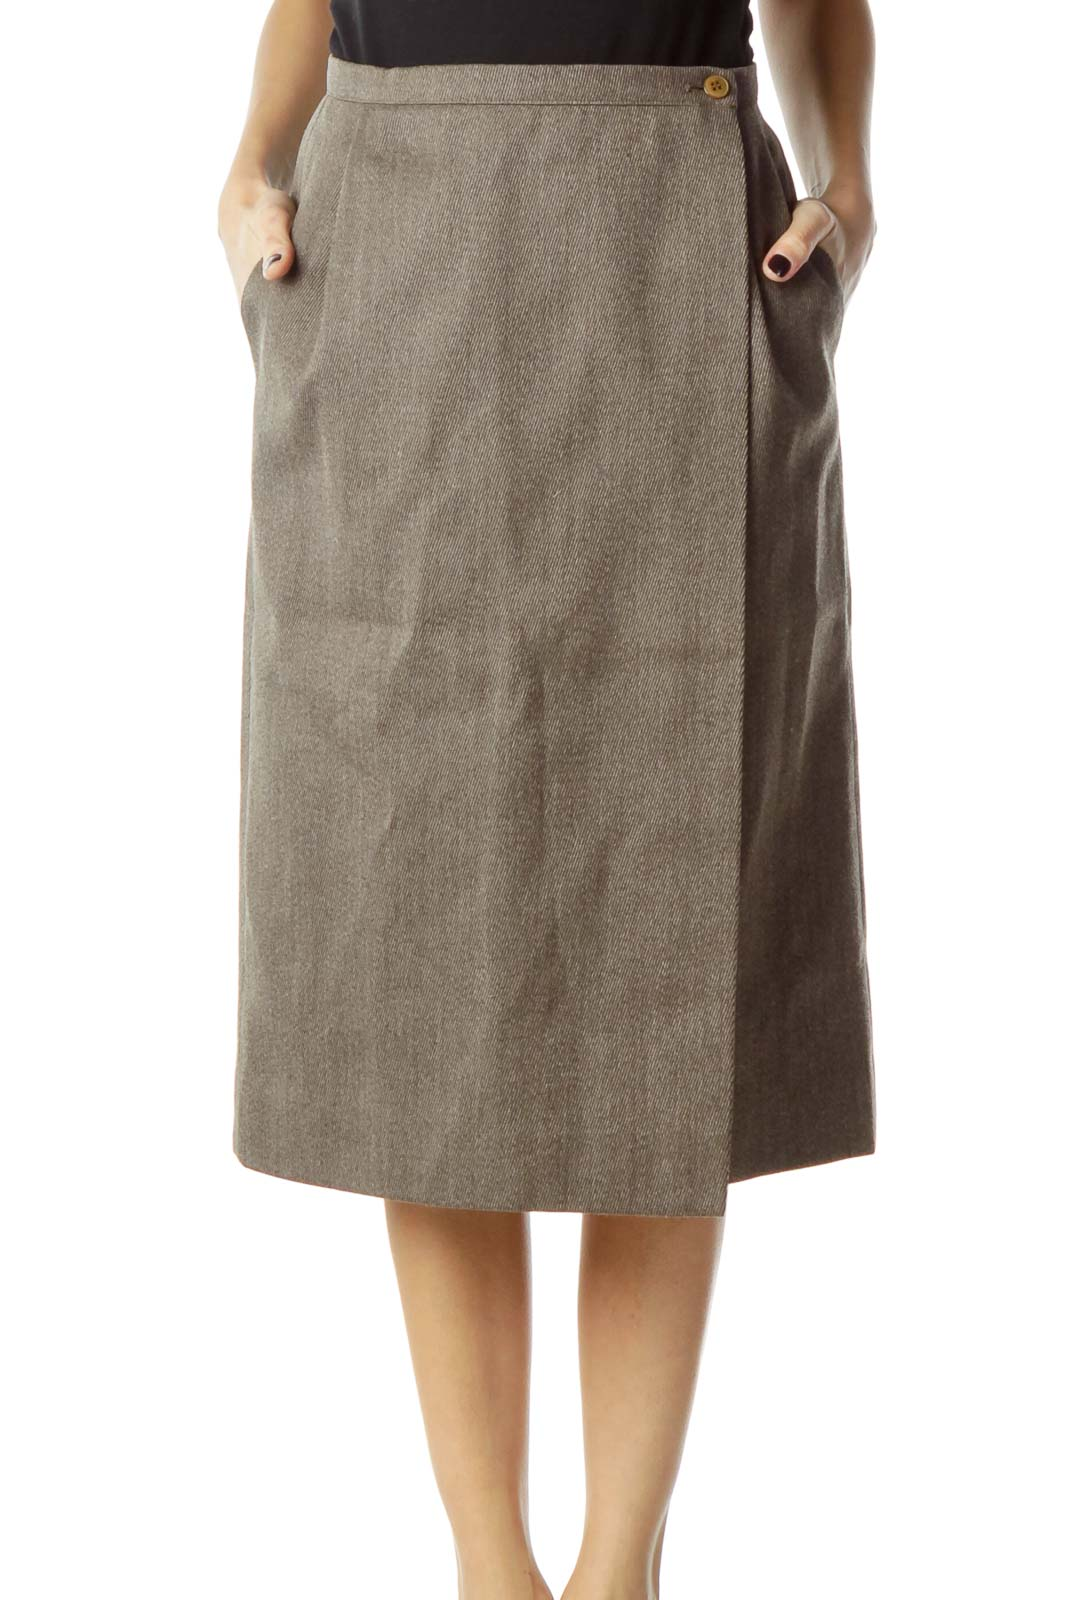 b0d19e817 Shop Brown Wool Pencil Skirt clothing and handbags at SilkRoll ...